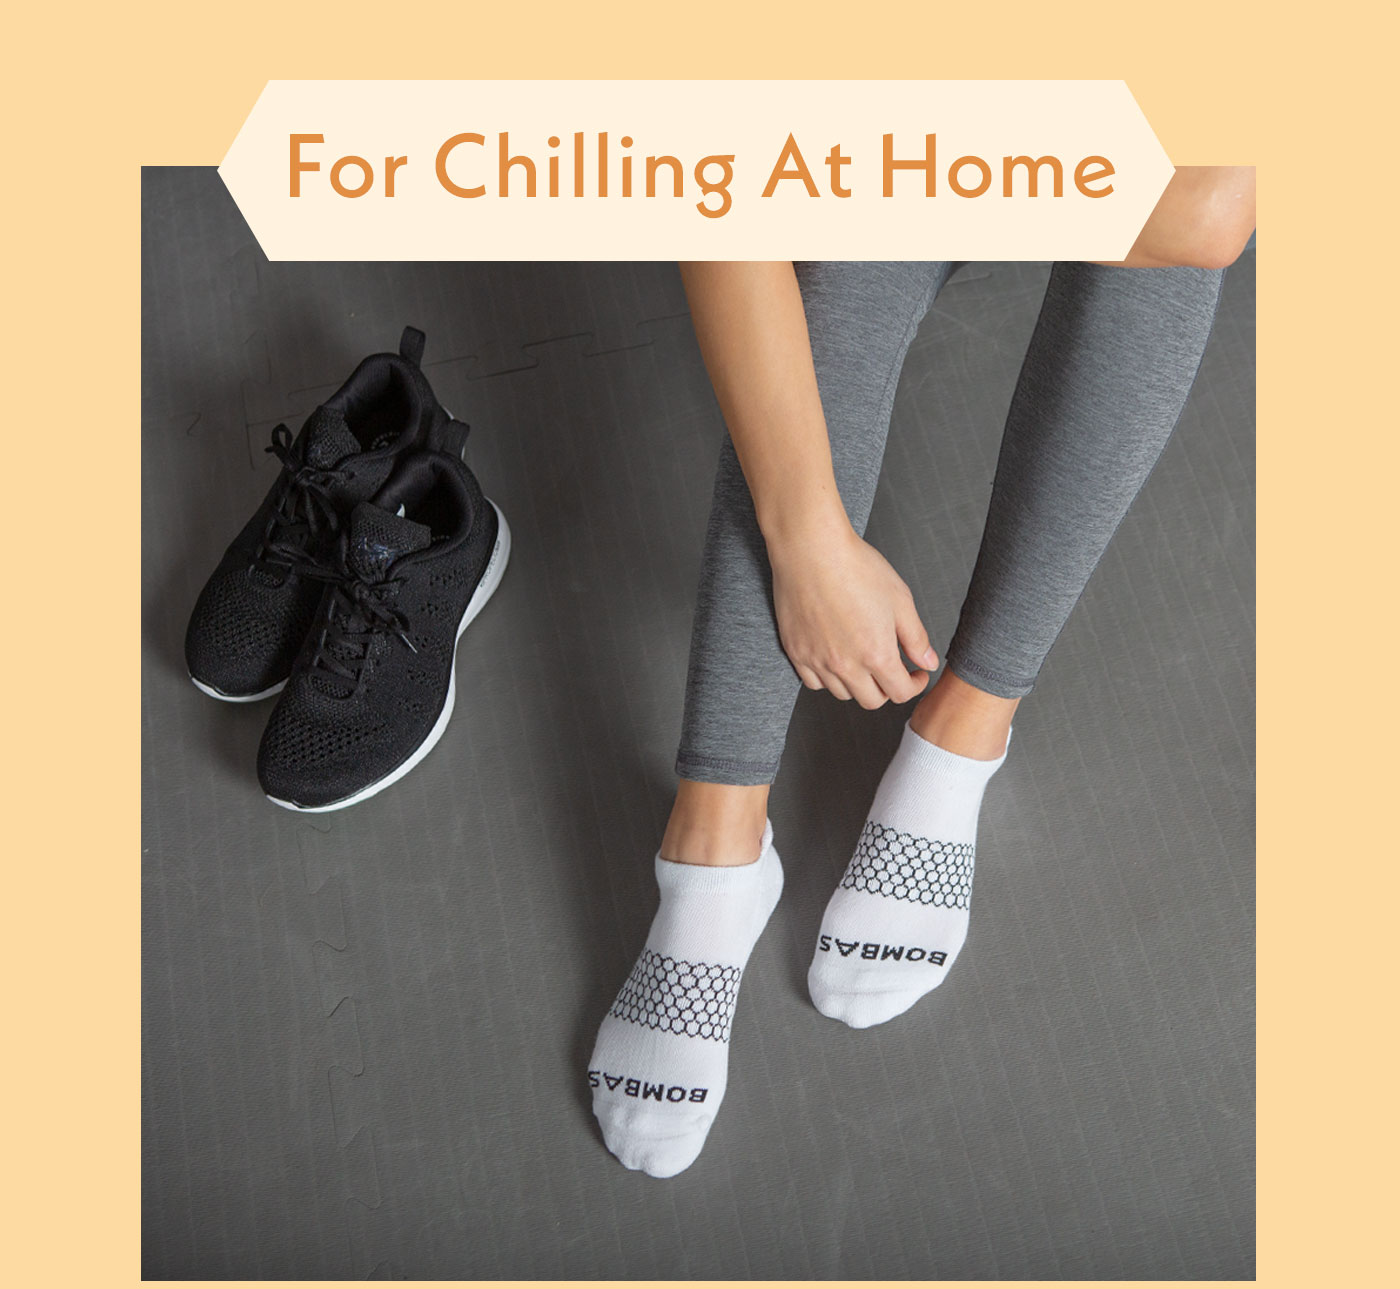 For Chilling at Home